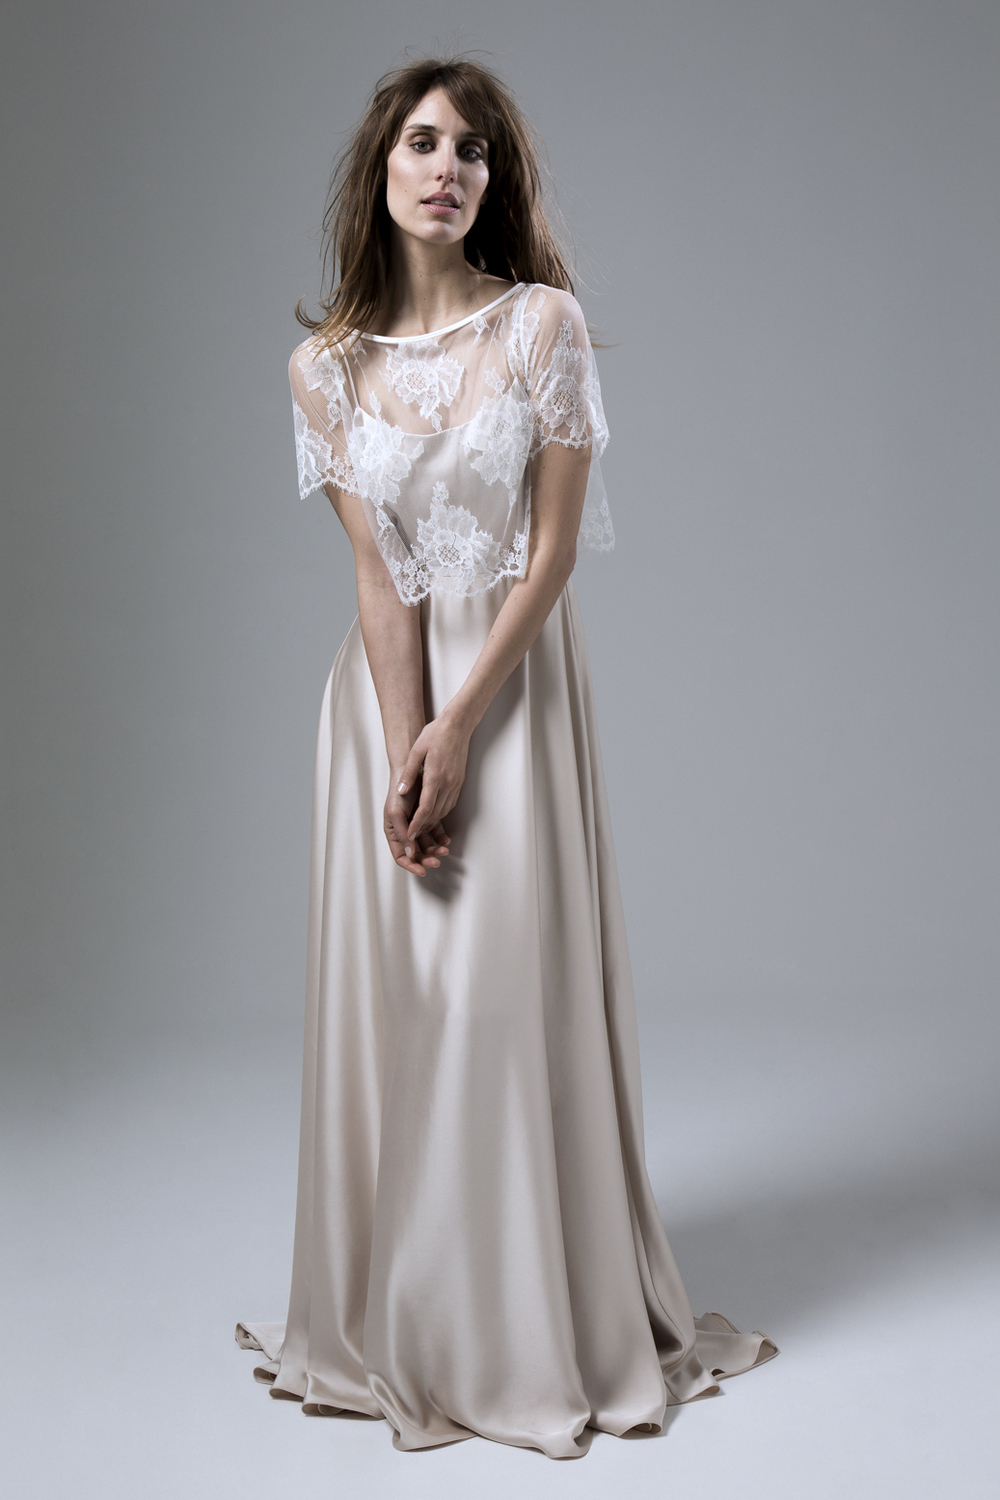 The Halfpenny London wedding dress of the week is our subtly glamorous blush satin Thea backless dress and the beautifully delicate Berry French lace jacket